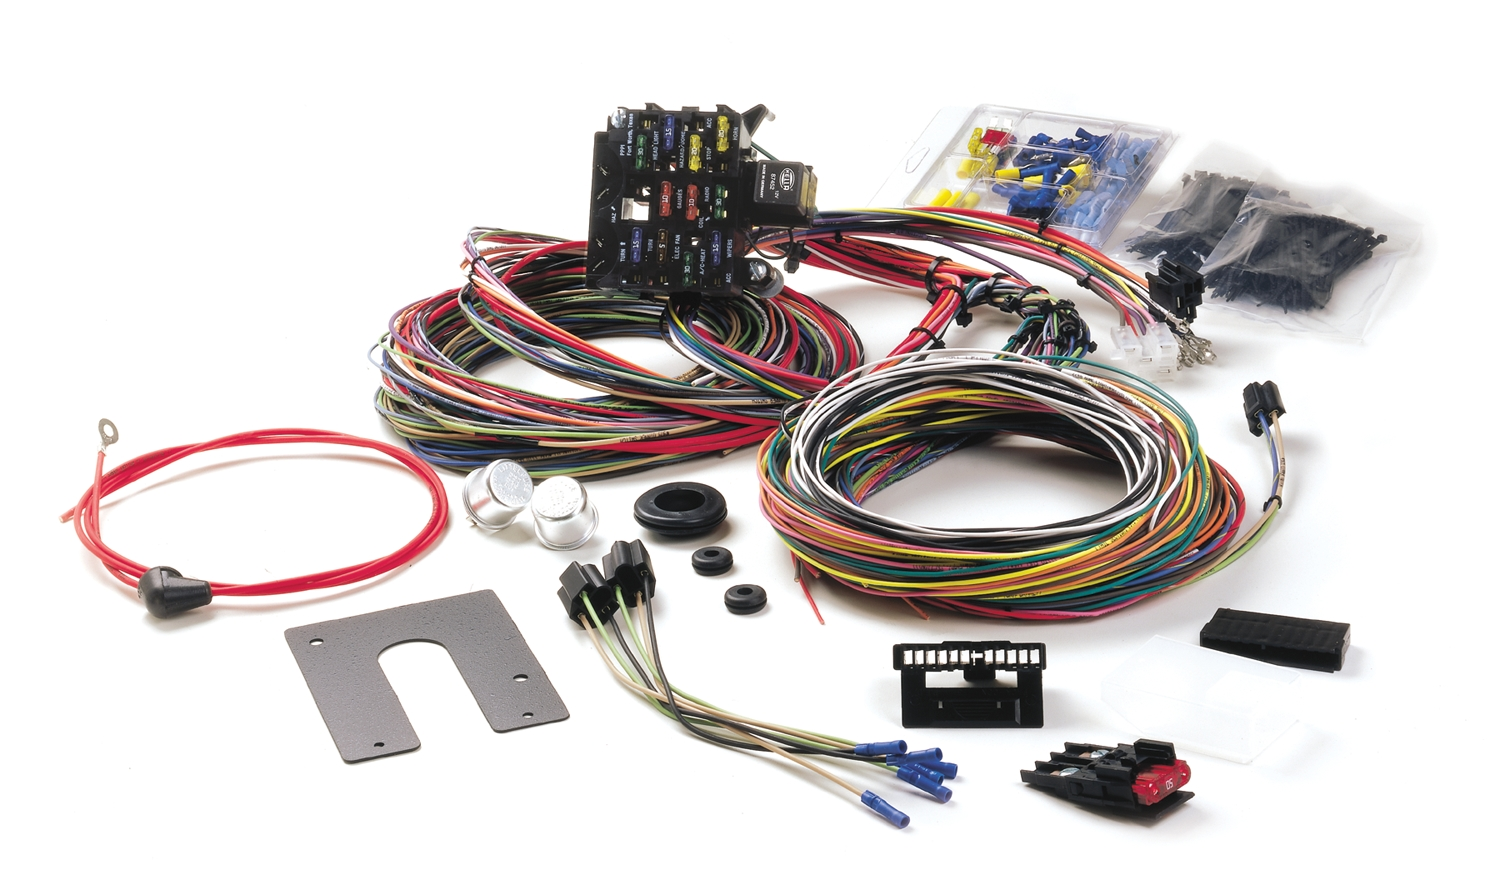 Vendors Street Rod Wiring Harness Guide And Troubleshooting Of For Ls1 Vendor Data Diagram Rh 14 Hrc Solarhandel De Hot